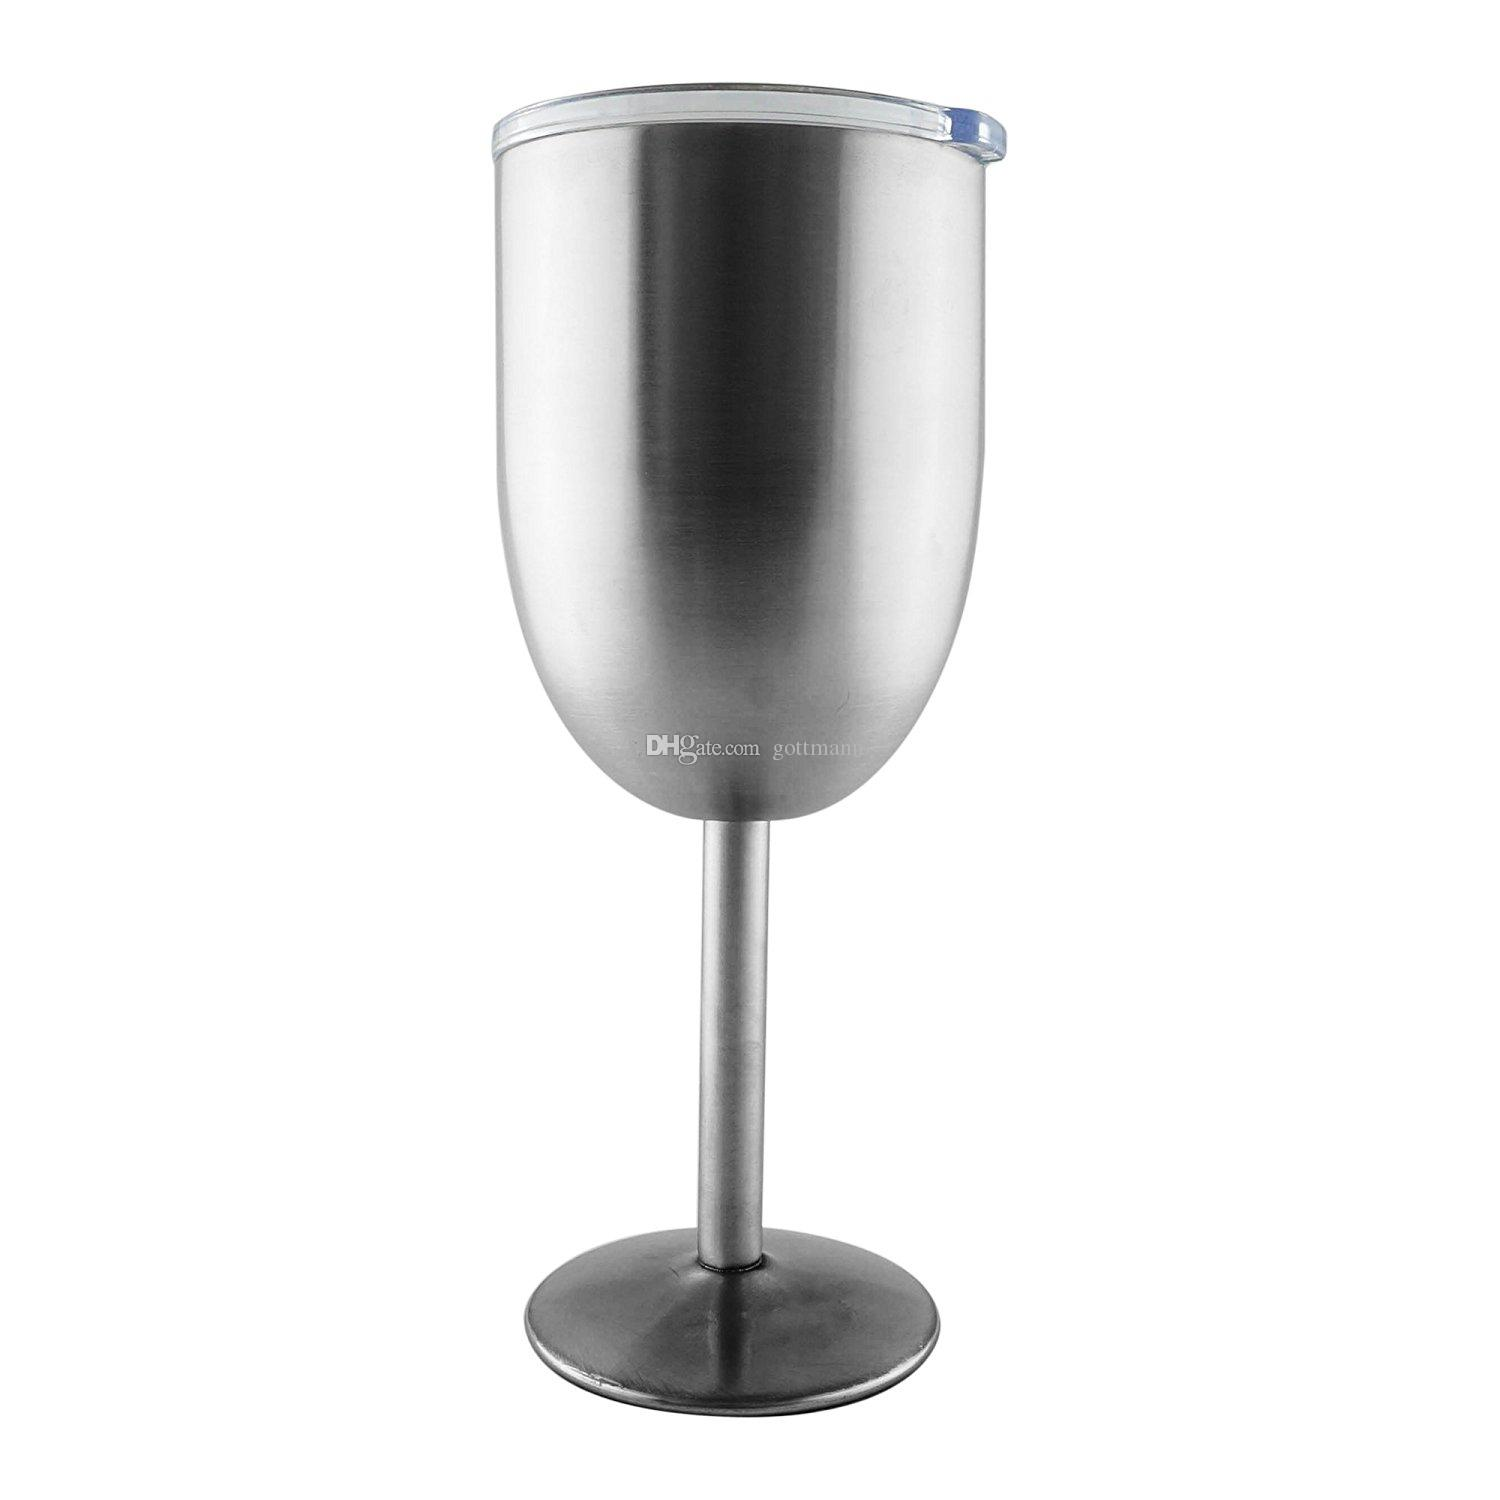 2019 Stainless Steel Wine Goblet 12oz Double Wall Vacuum Insulated